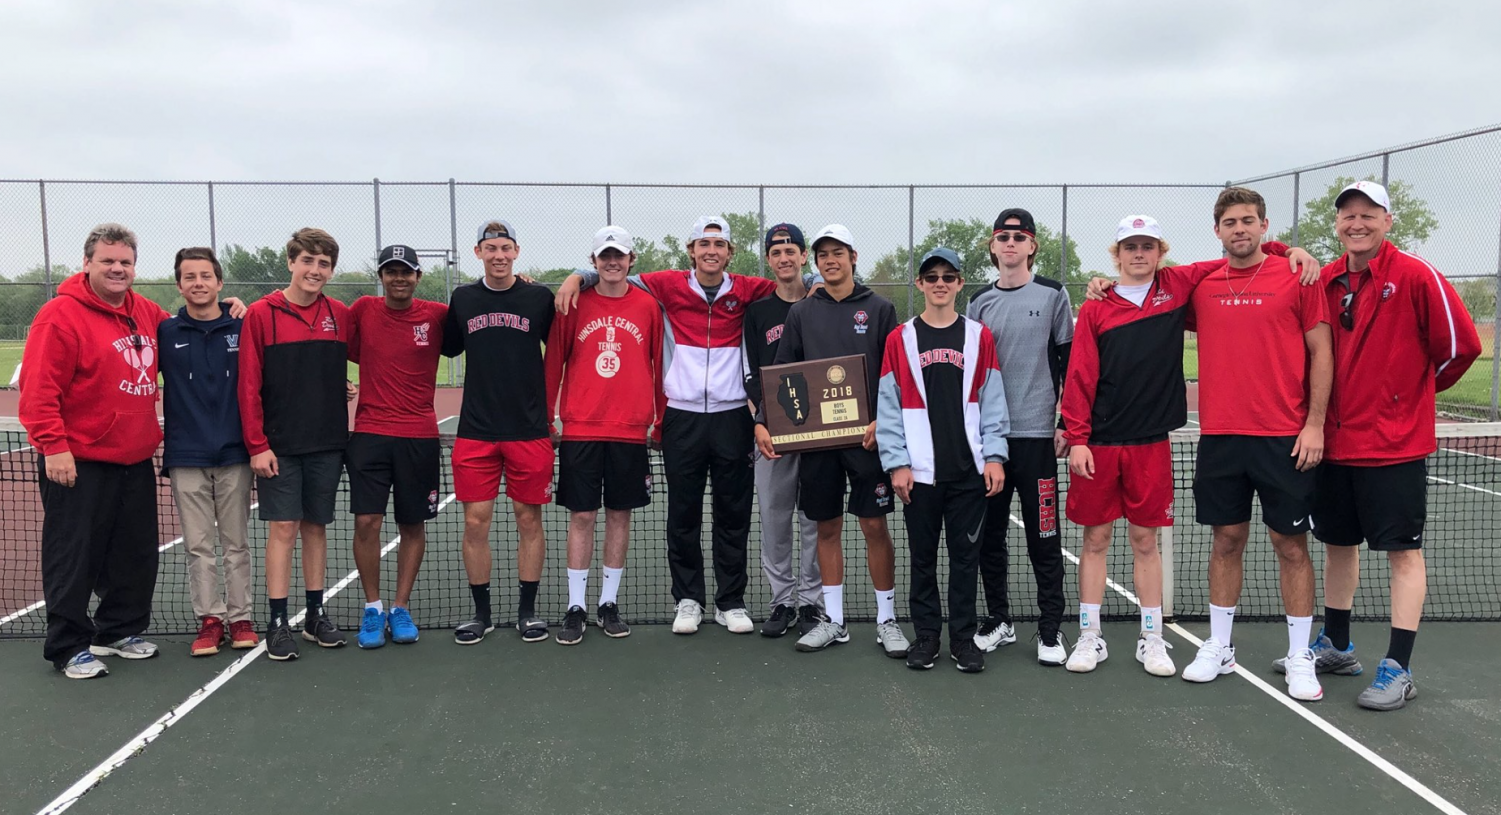 The variety tennis team advanced to the state finals after placing first at sectionals on May 18.